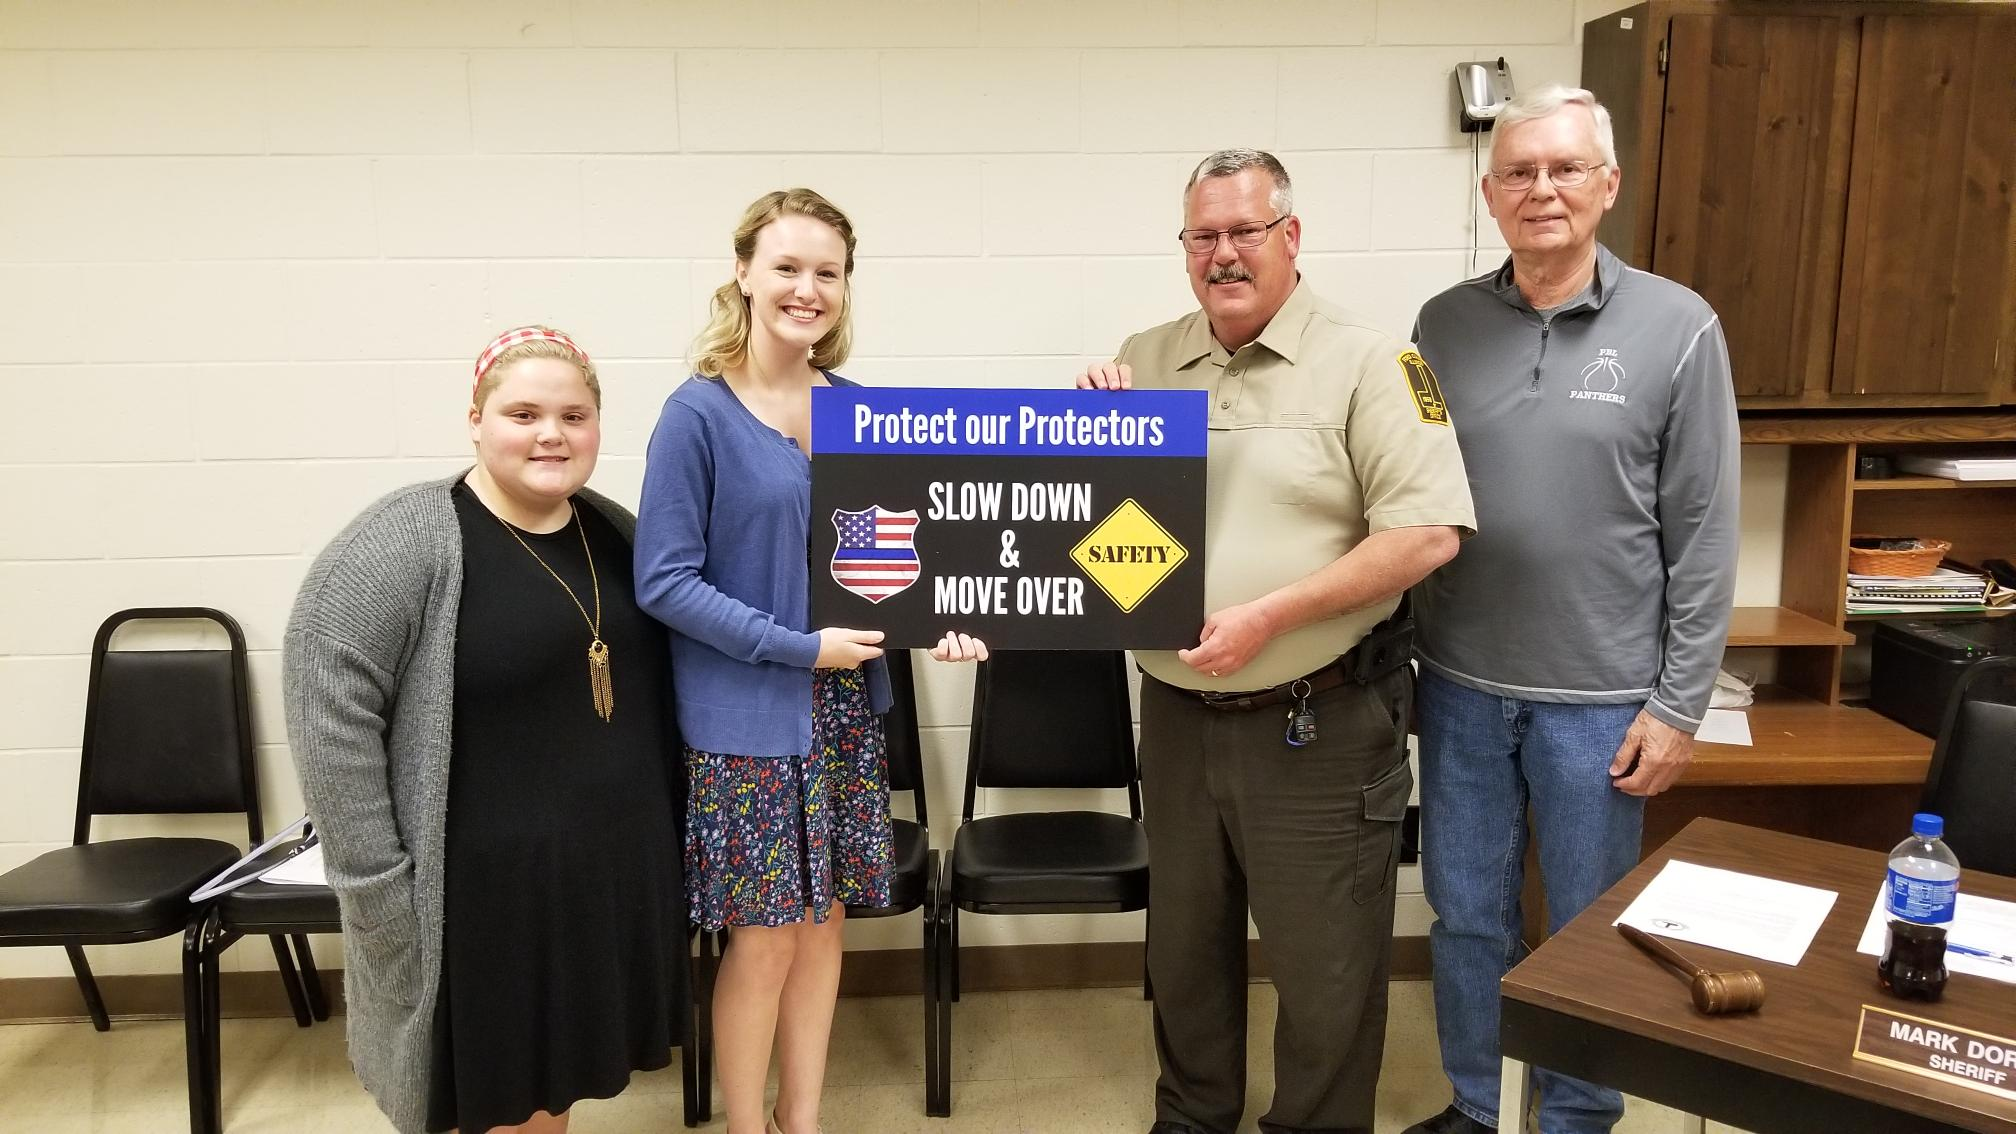 GCMS IGNITION PROJECT (LEFT TO RIGHT: HANNAH CLIFF, PAYTON BEACH, SHERIFF DORAN & GREG PERKINSON